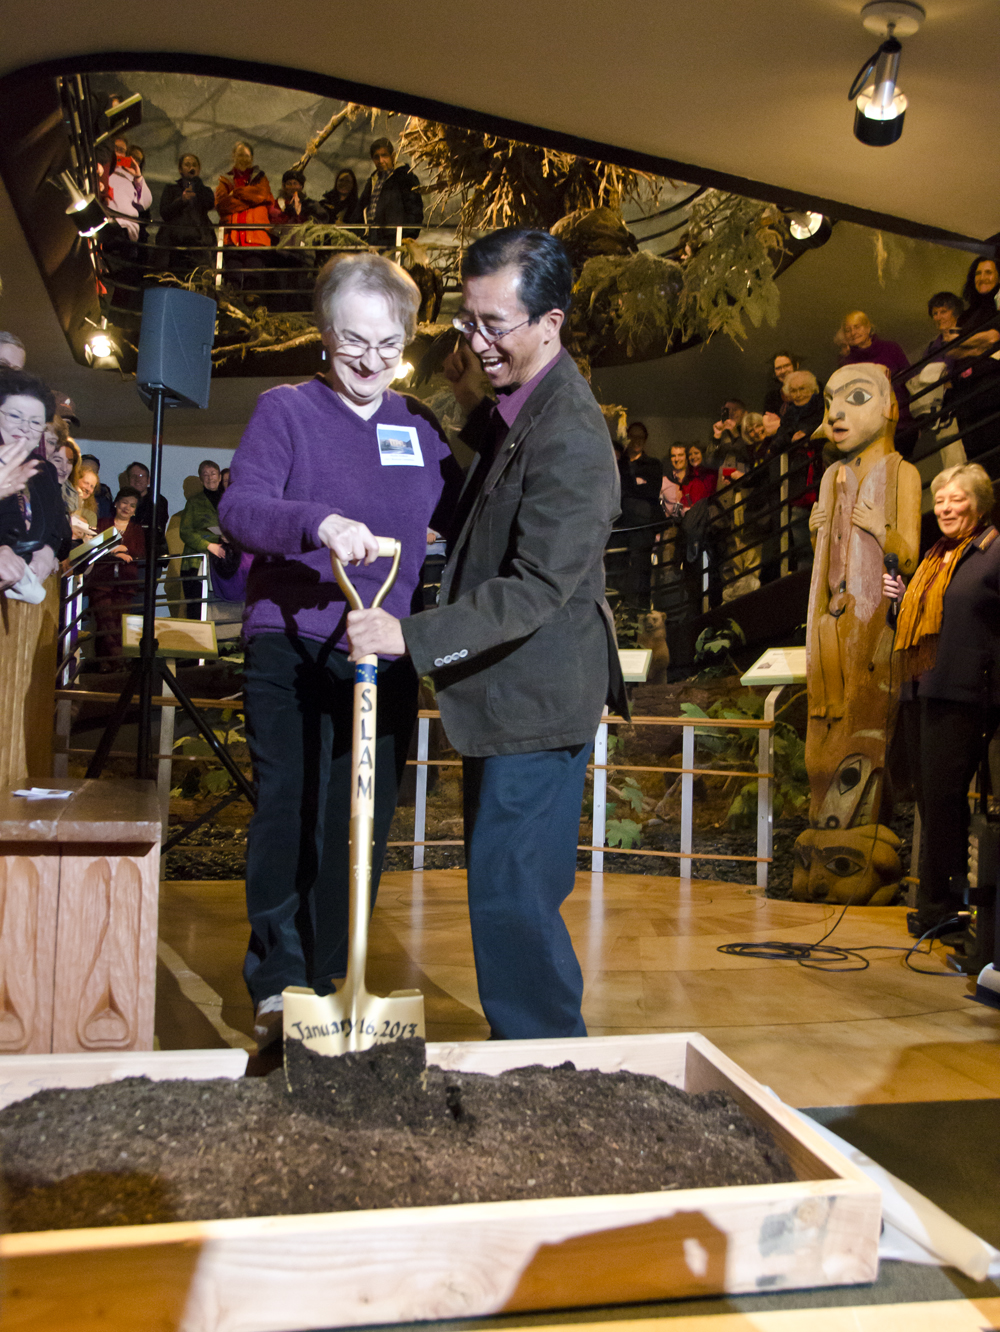 Phyllis DeMuth, member of the 1967 Alaska State Museum Committee, and Ron Inouye, representative of the Alaska Historical Society break ground.